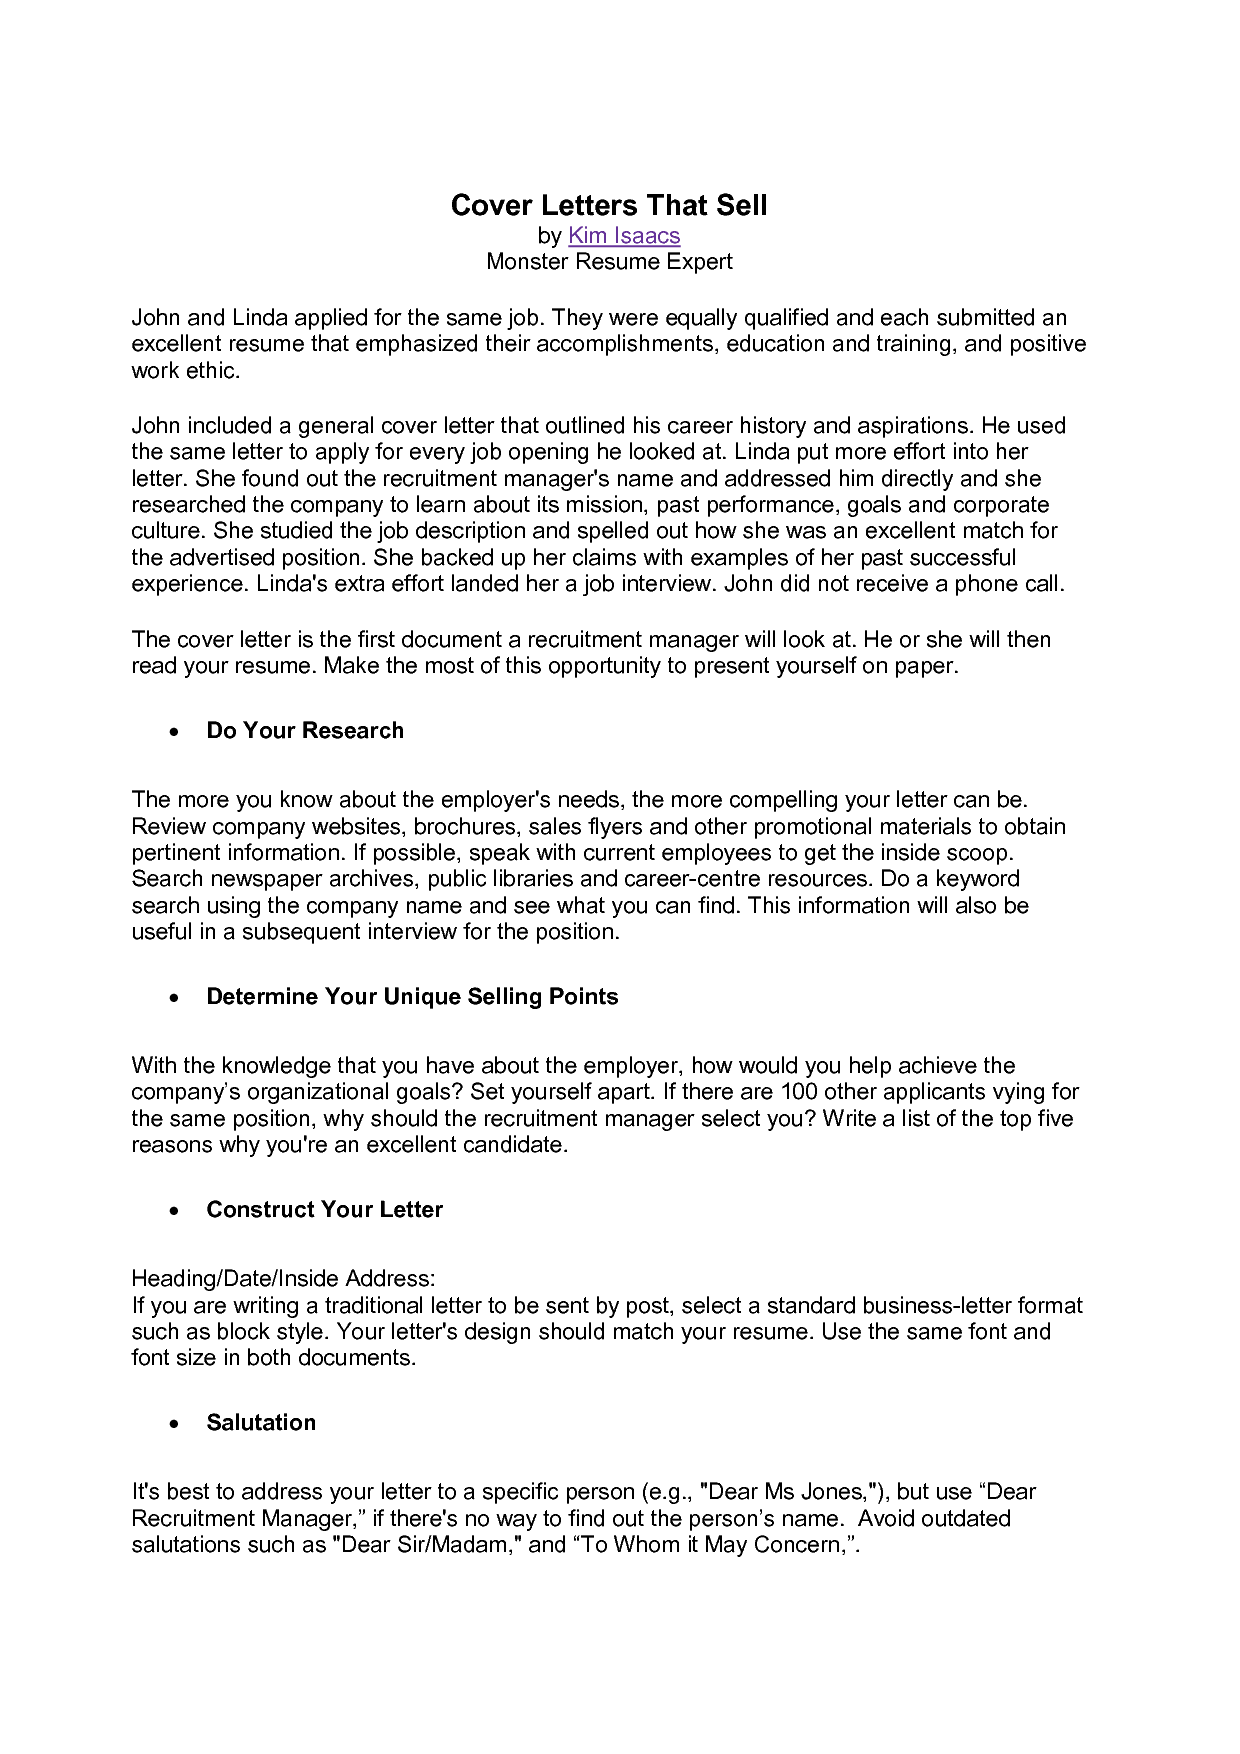 monster cover letter free download monster cover letter monster cover letter template monster cover letter examples monster cover letter tips